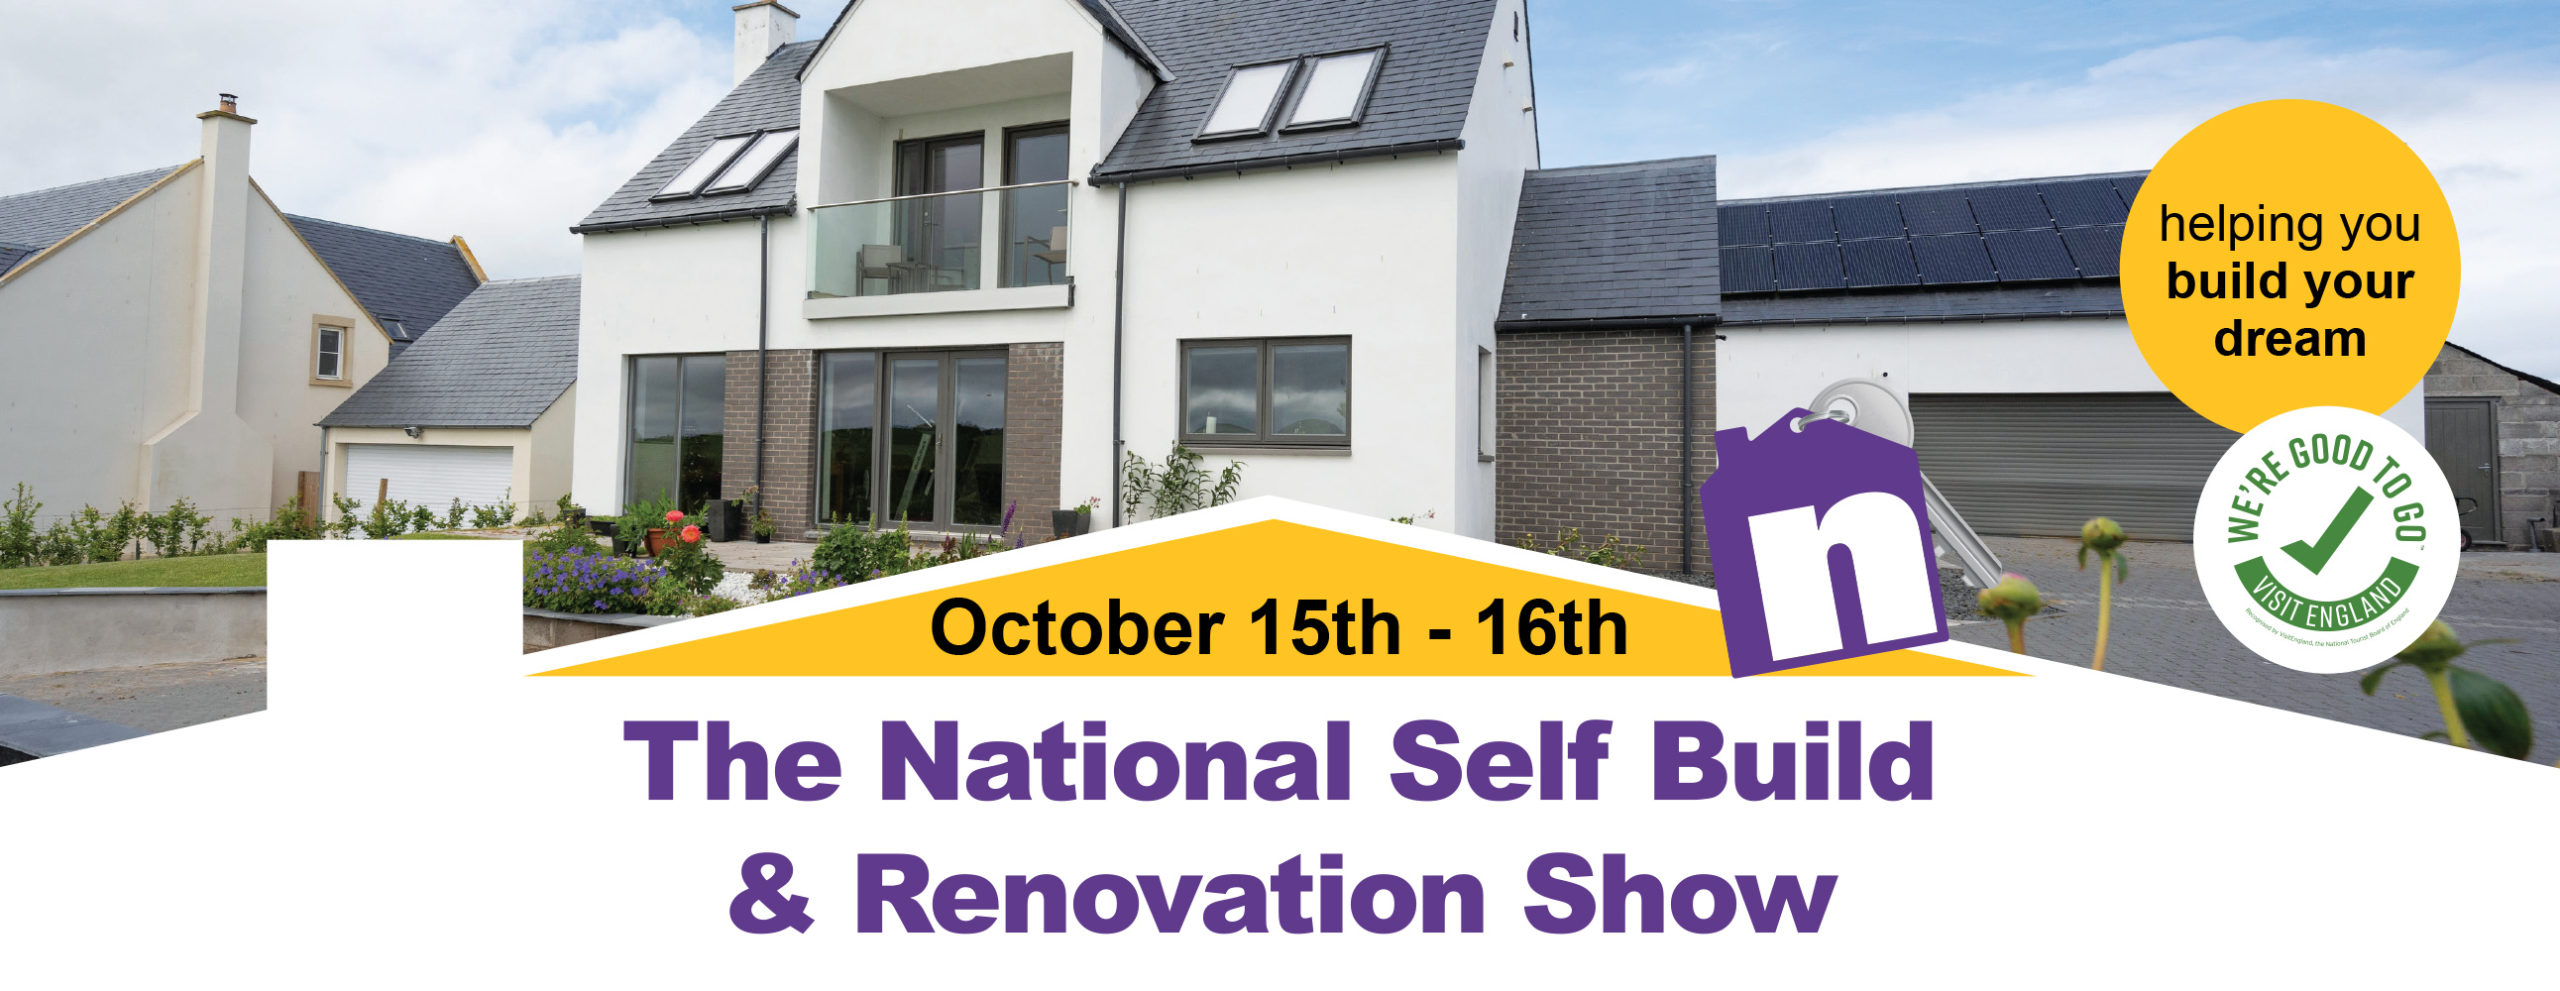 The National Self Build and Renovation Show. October 15th & 16th 2021